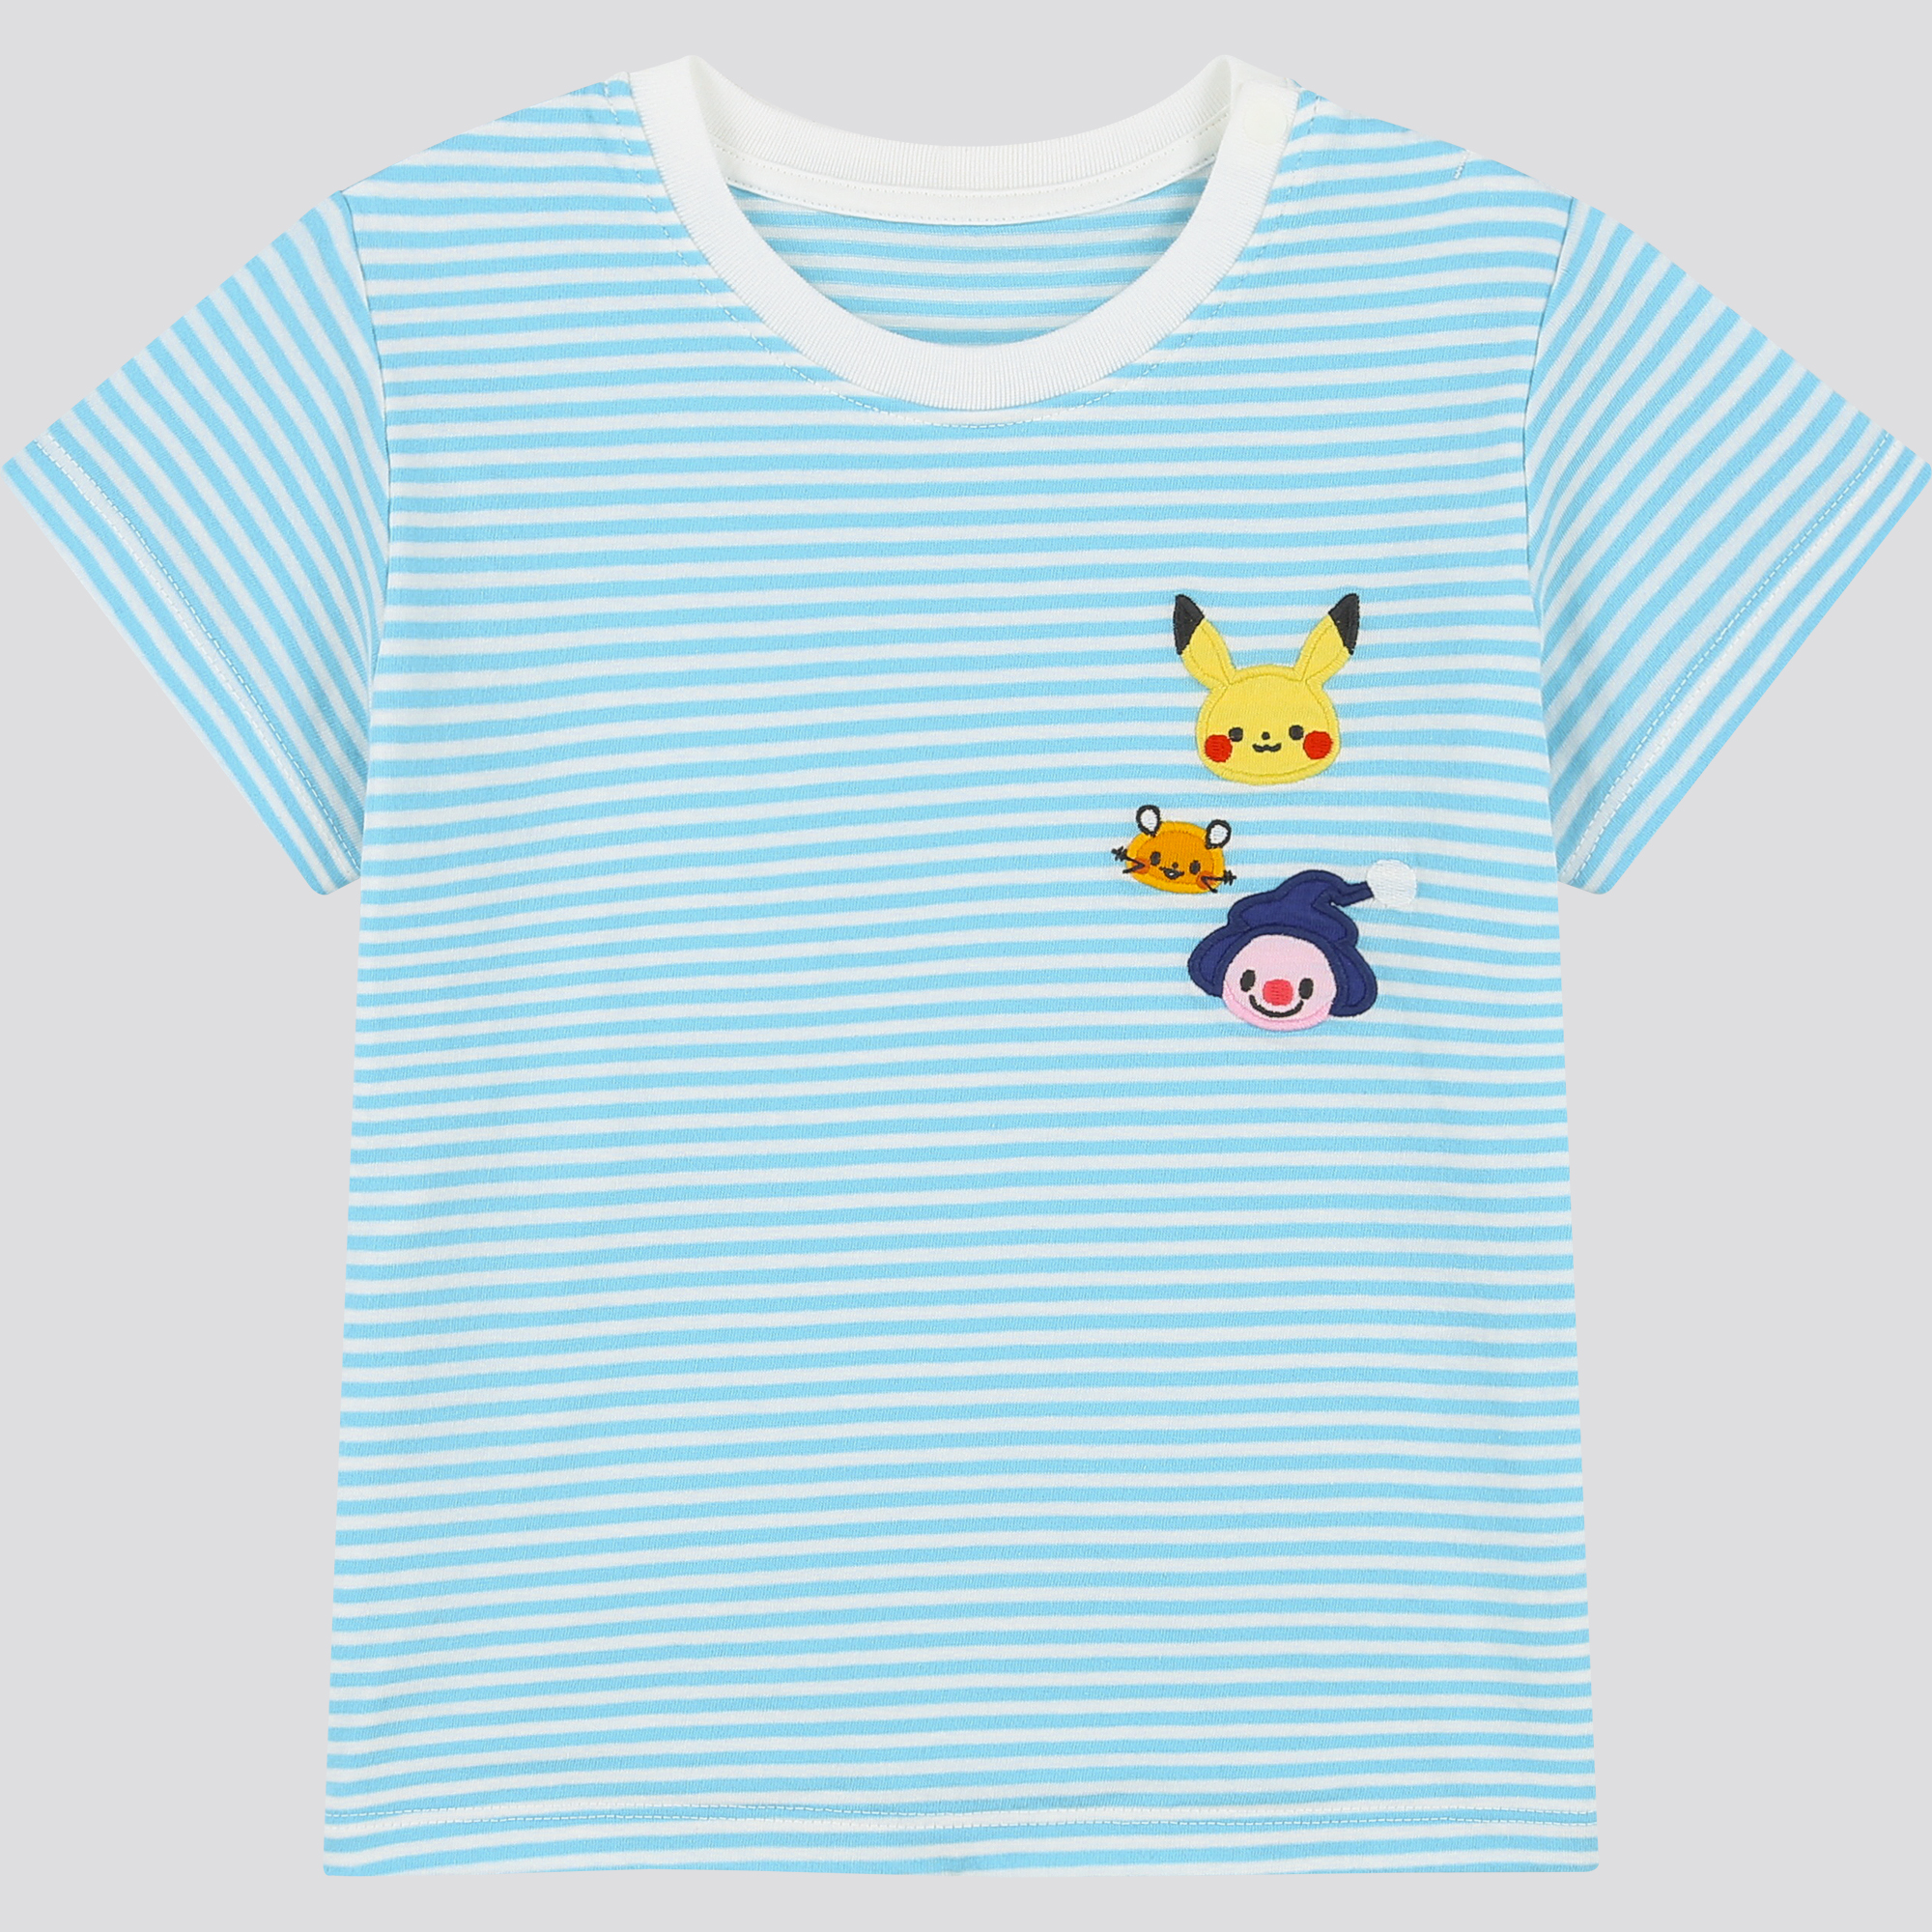 UNIQLO Launching With Pokémon UT and monpoké UT Collections